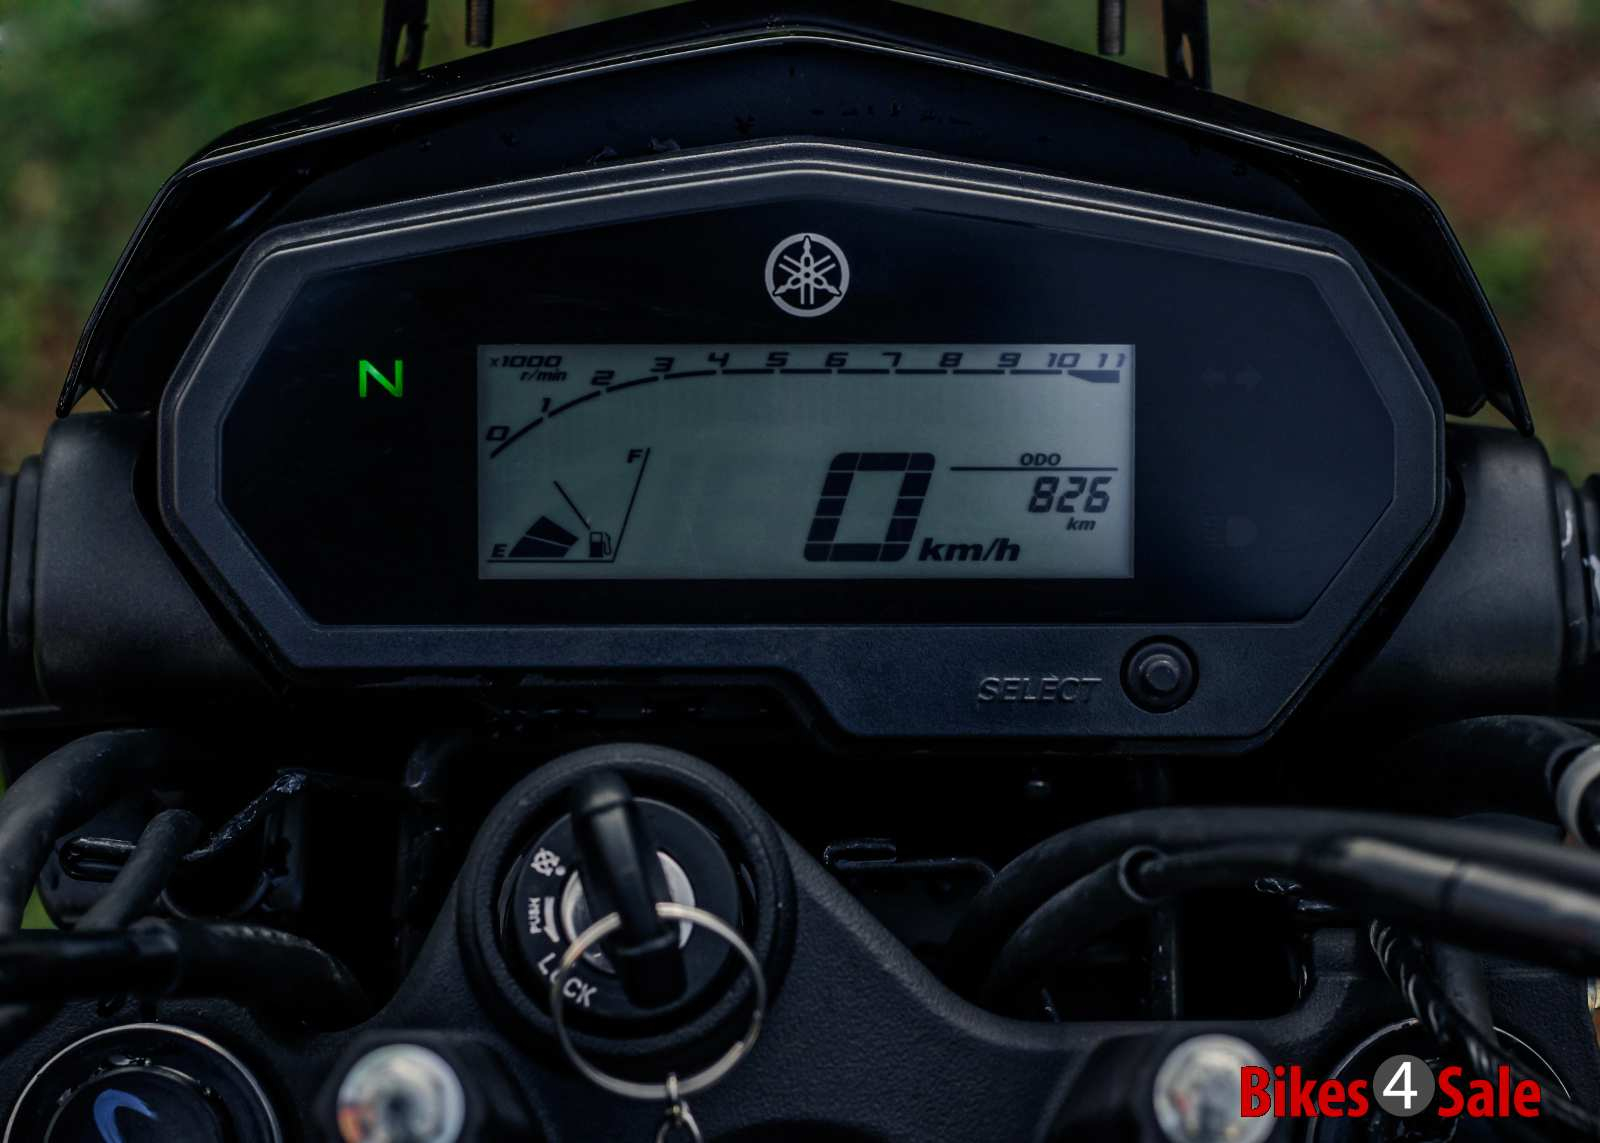 Yamaha Fz25 digital instrument panel